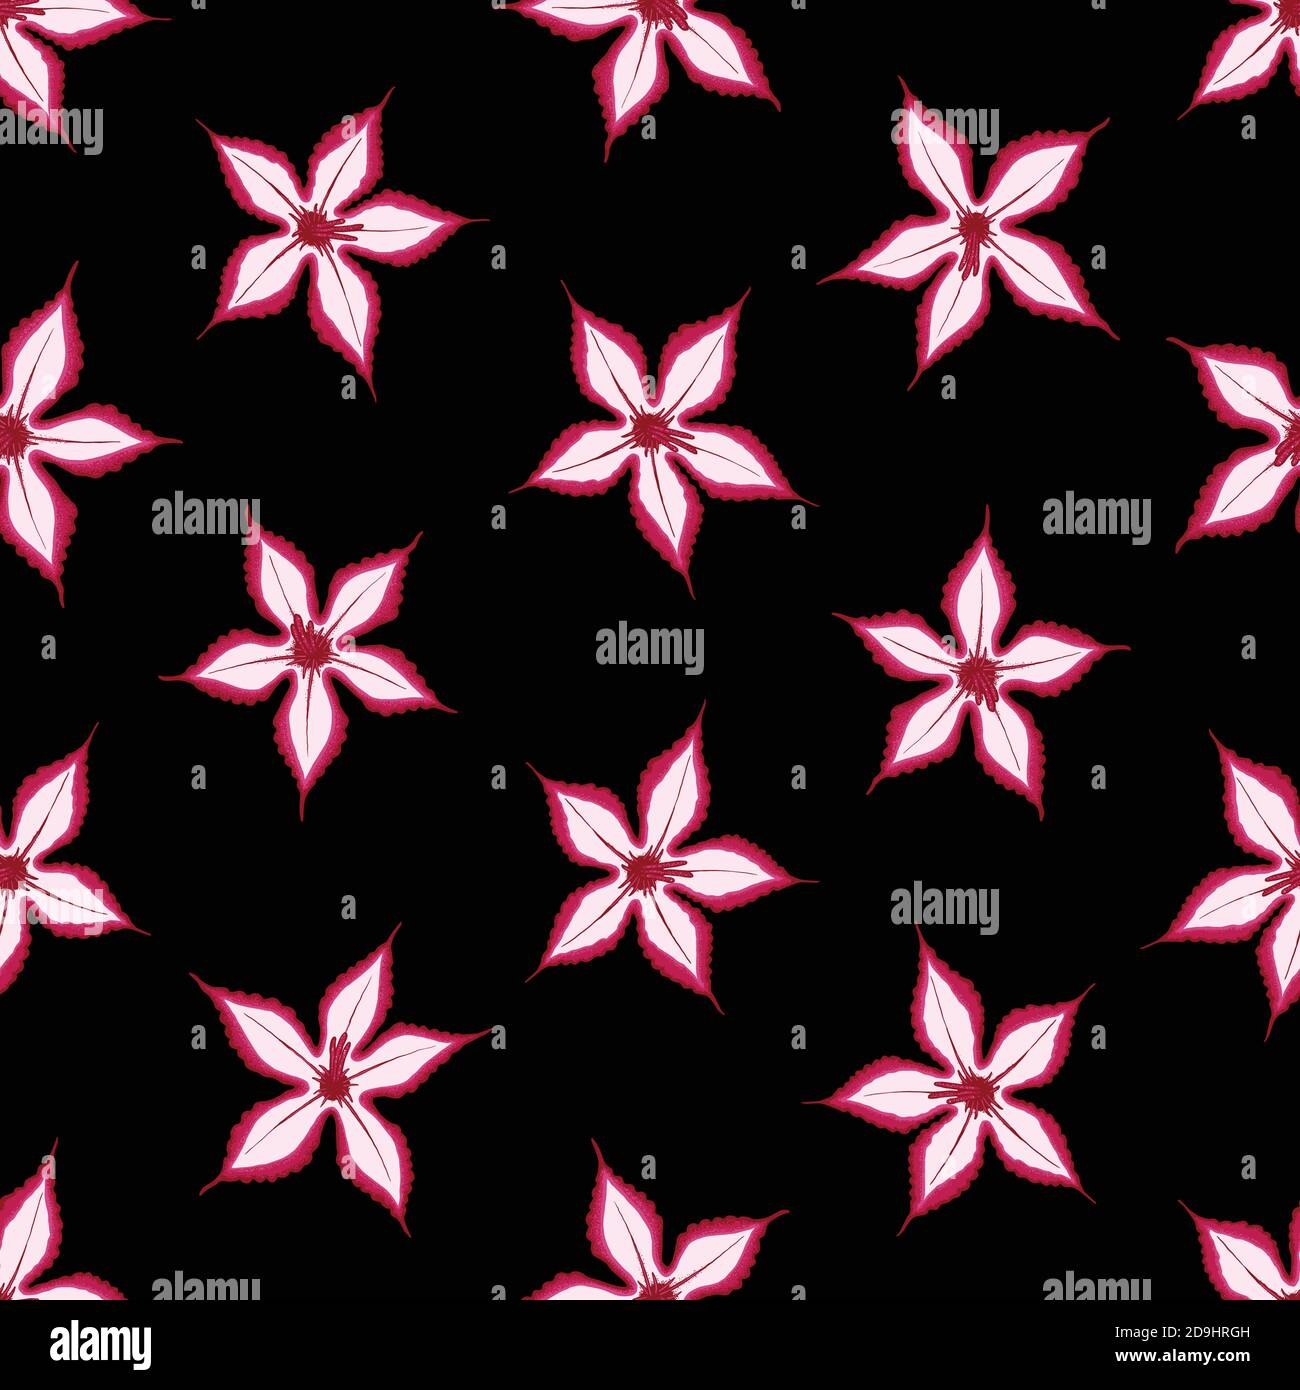 Pink Impala seamless pattern with black background. Desert wild flower concept. Vector illustration pattern for surface, t shirt design, print, poster Stock Vector